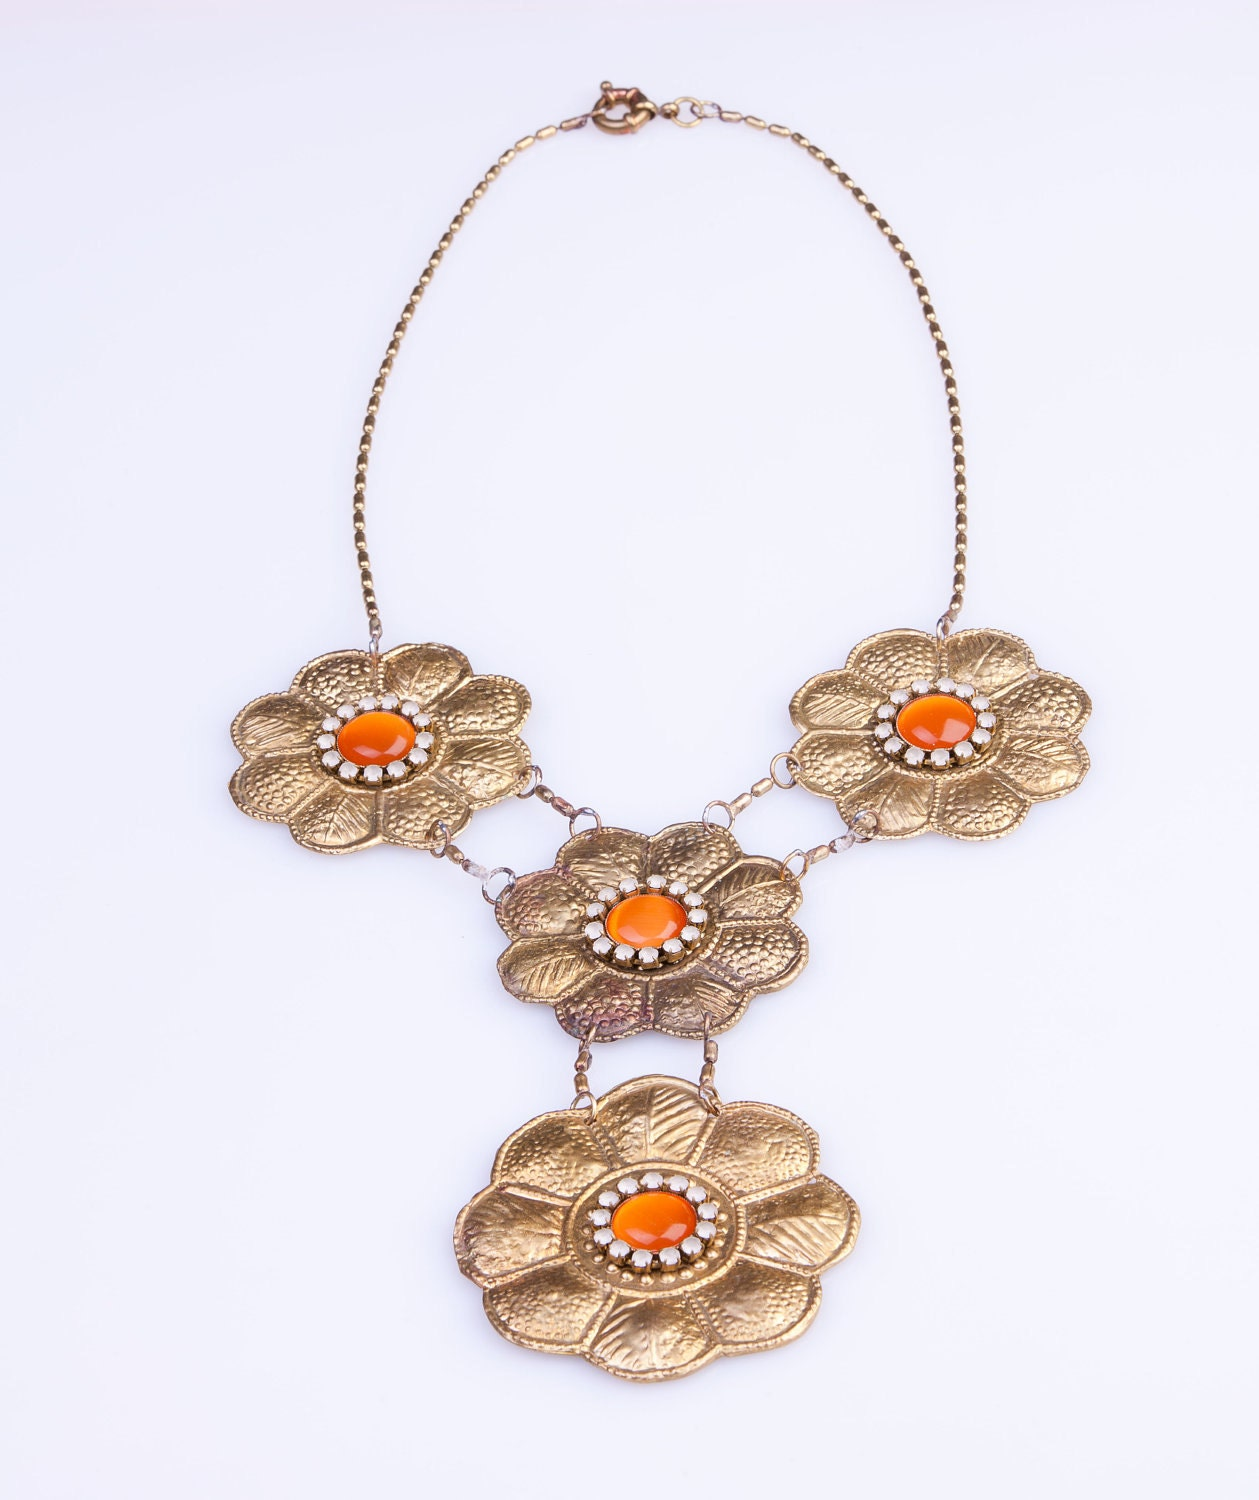 Indonesian necklace 4 flowers - VAMPbijoux